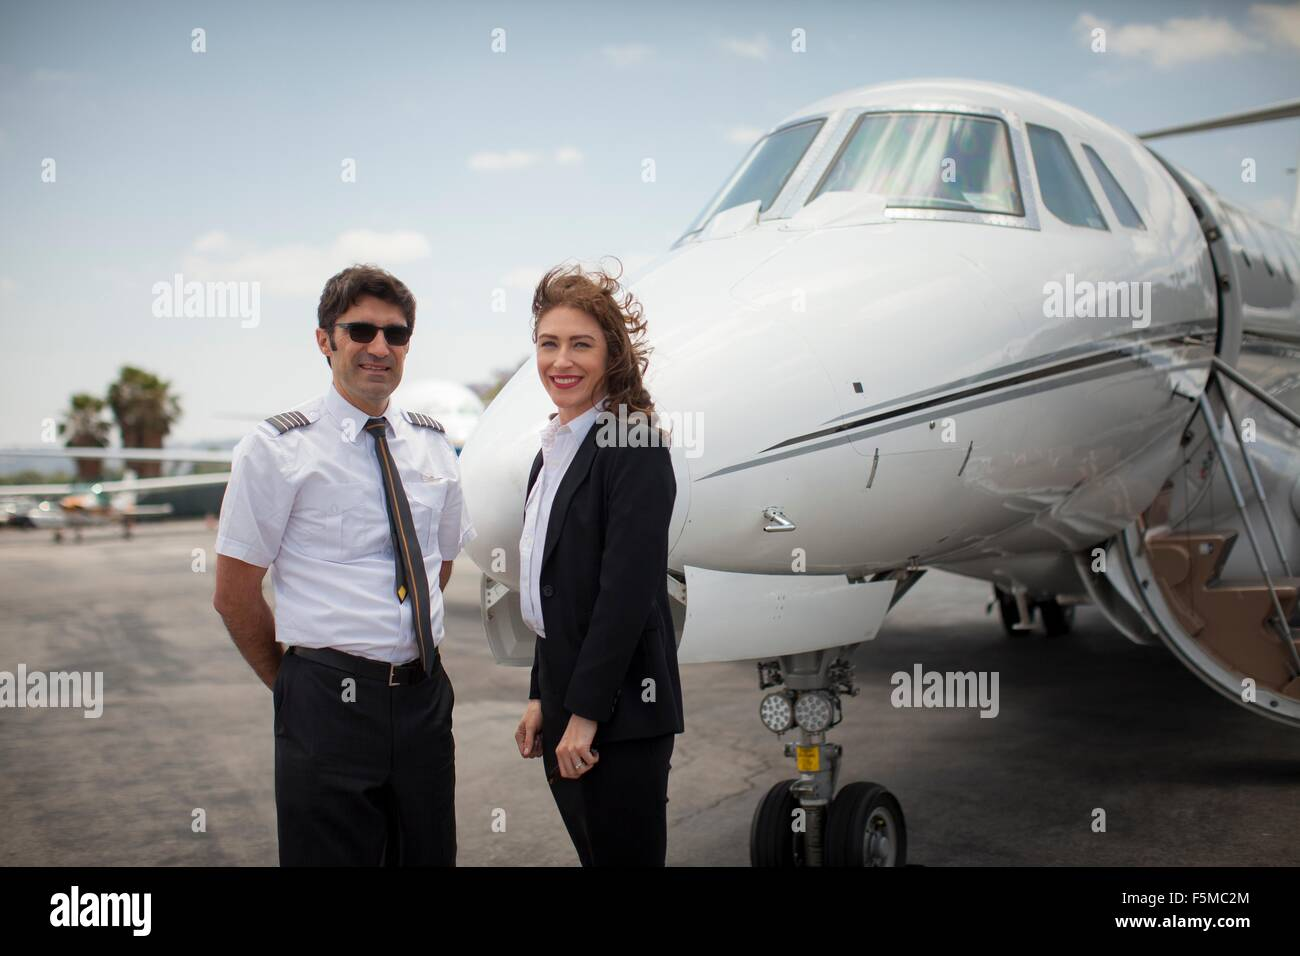 Portrait of female businesswoman and pilot of private jet at airport - Stock Image